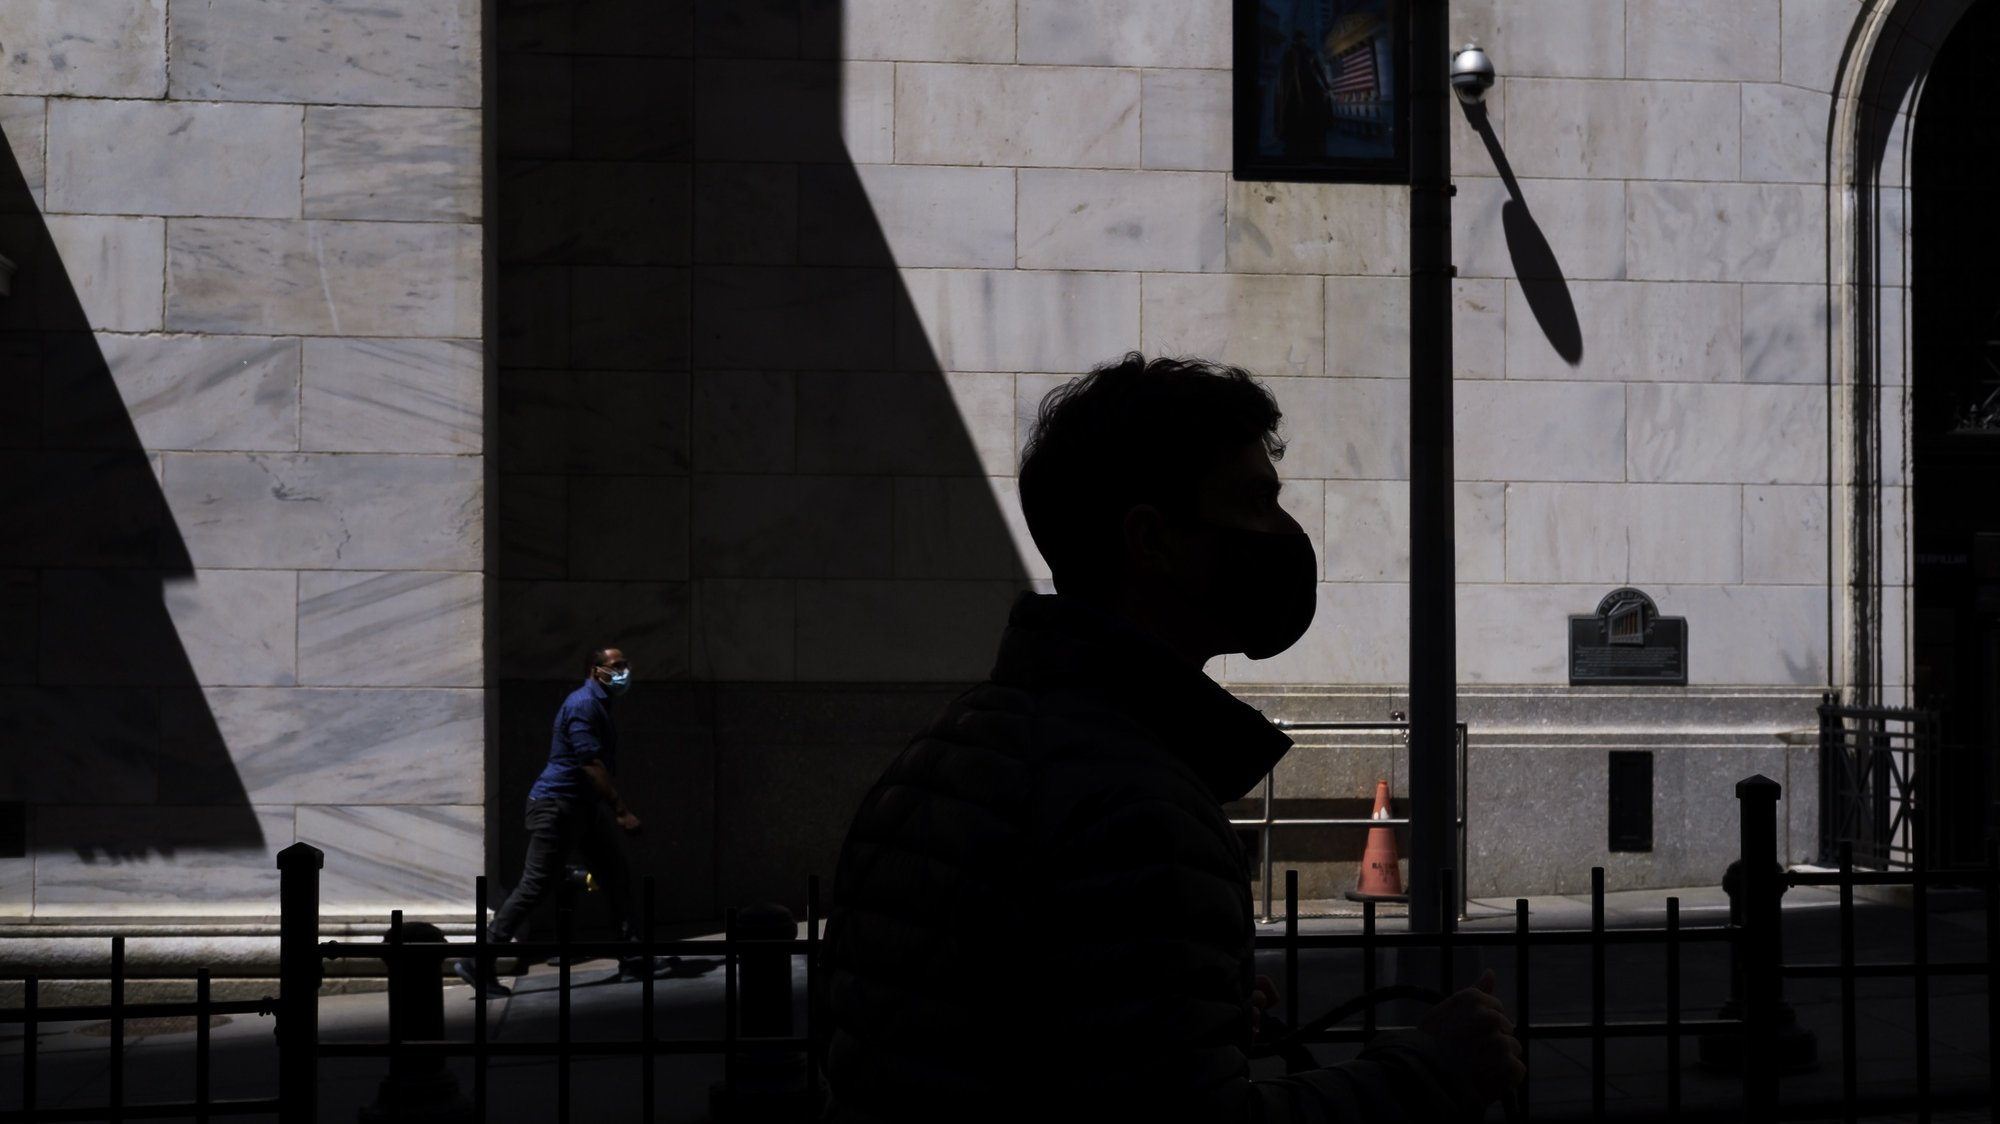 epa09162377 A person walks by the New York Stock Exchange in New York, New York, USA, 26 April 2021.  EPA/JUSTIN LANE